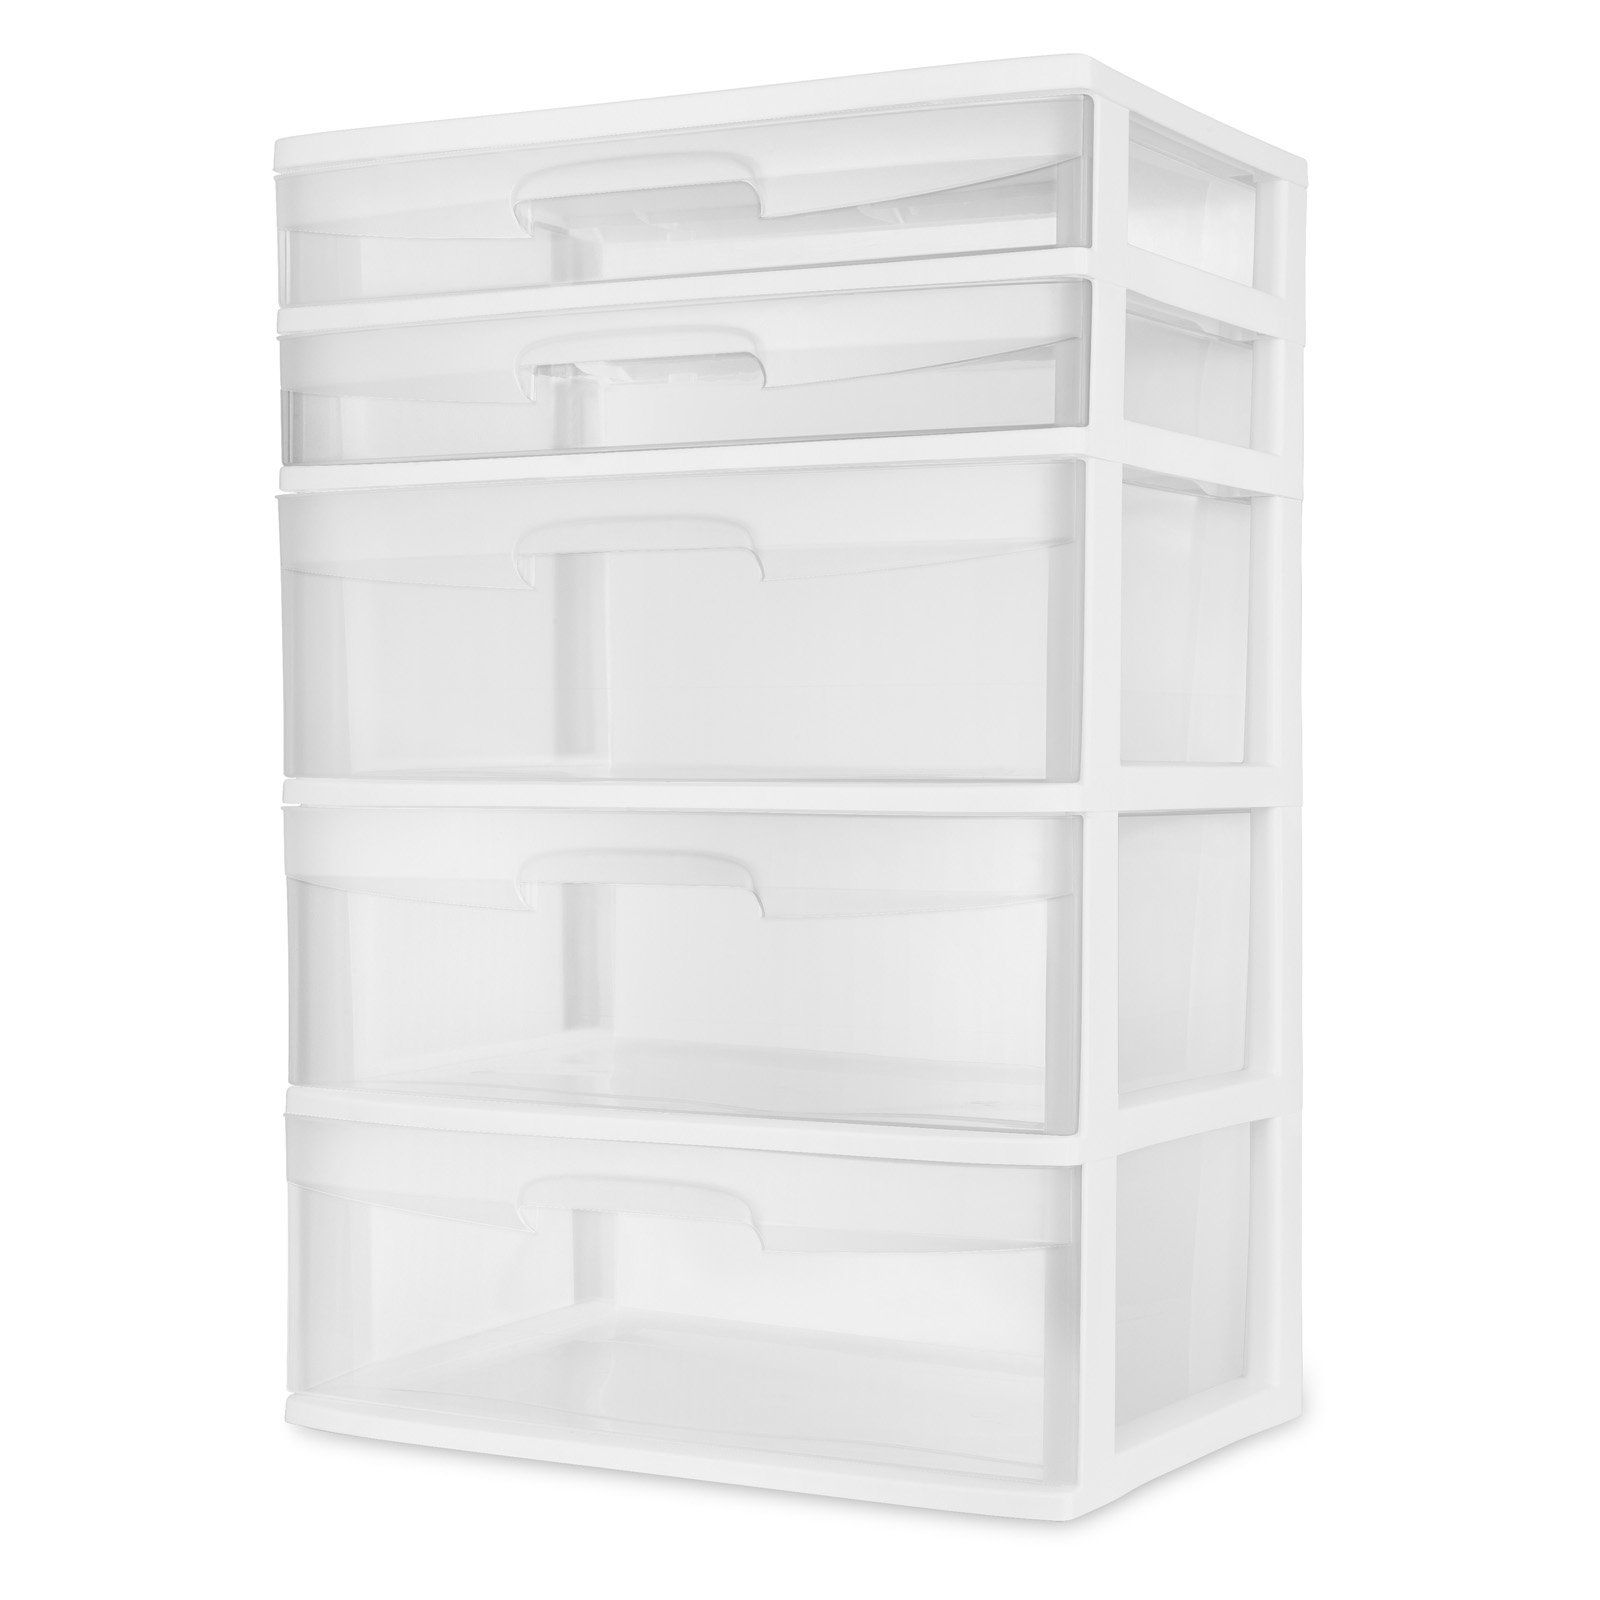 Sterilite 5 Drawer Wide Tower White Drawers Home Decor